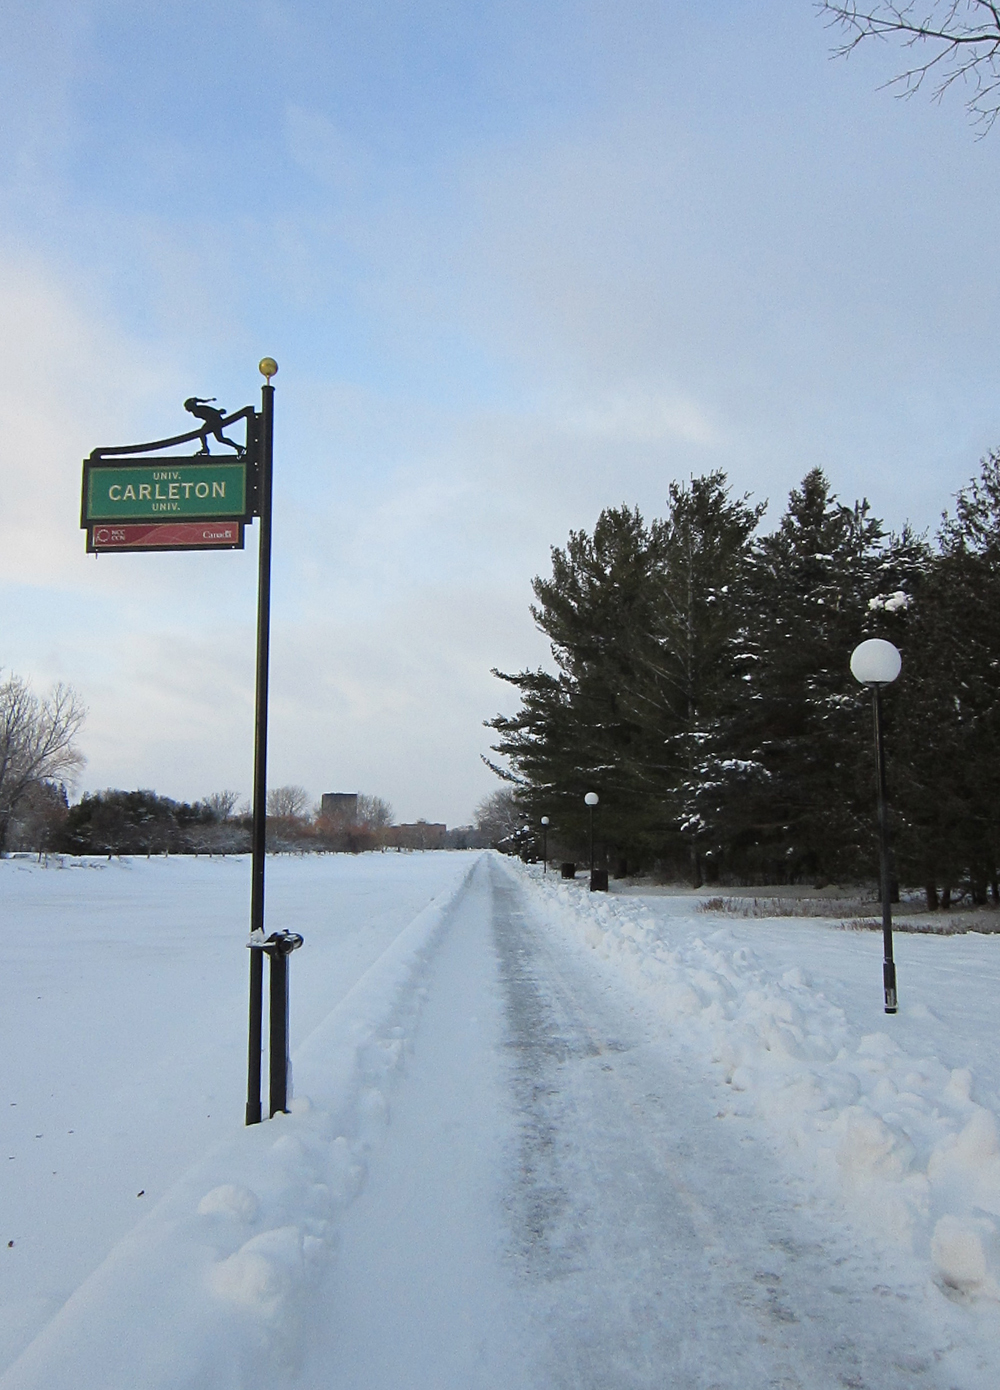 Rideau Canal Pathway in the winter